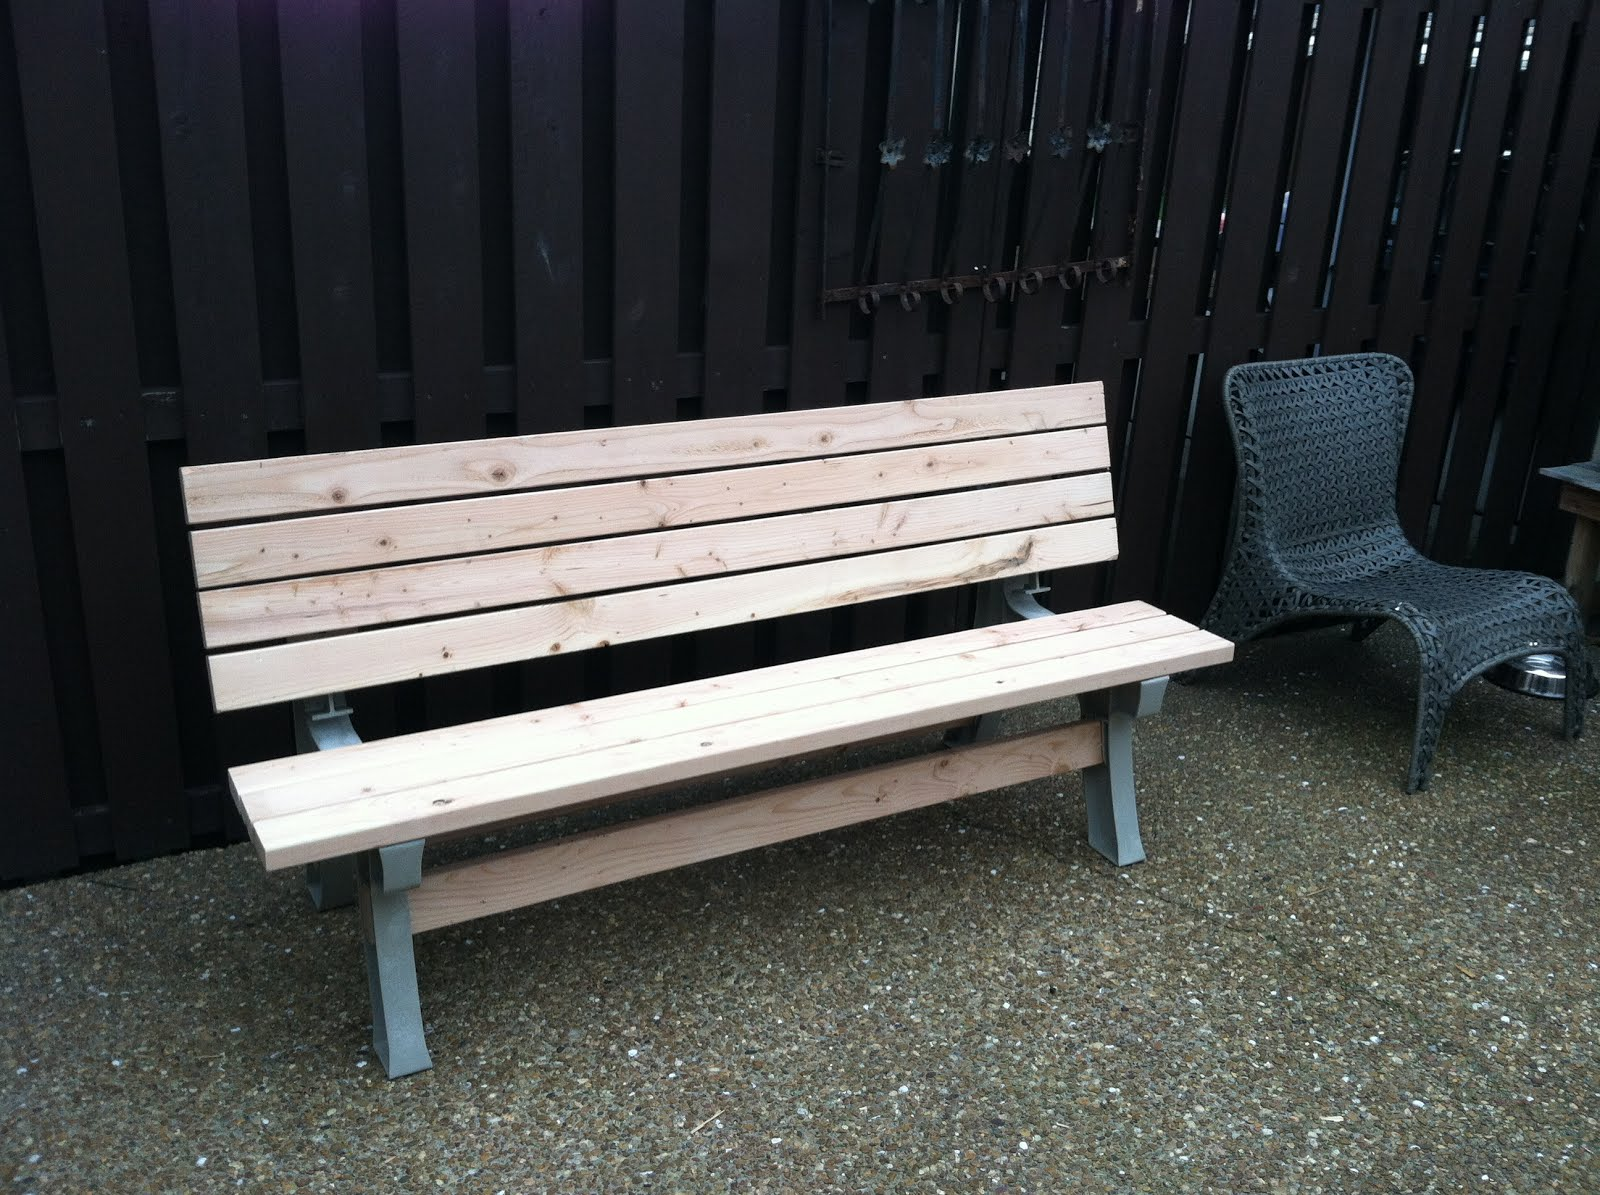 Bench with Tilt Back in Upright Position